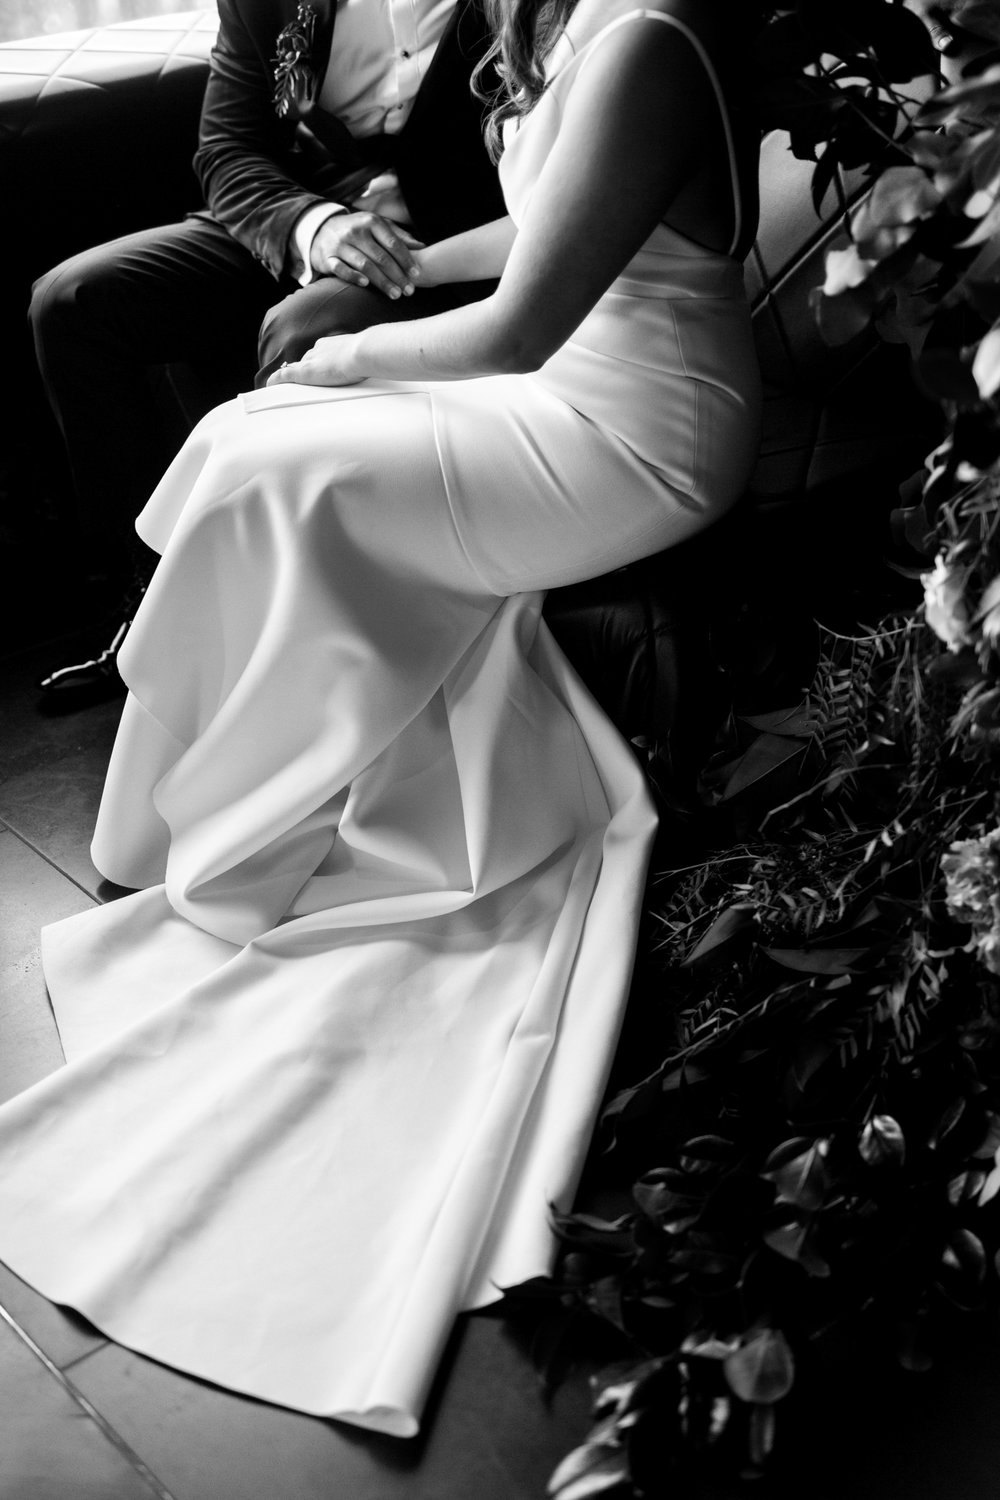 mr-theodore_white-vine-photography_same-sex-wedding-directory21.jpg